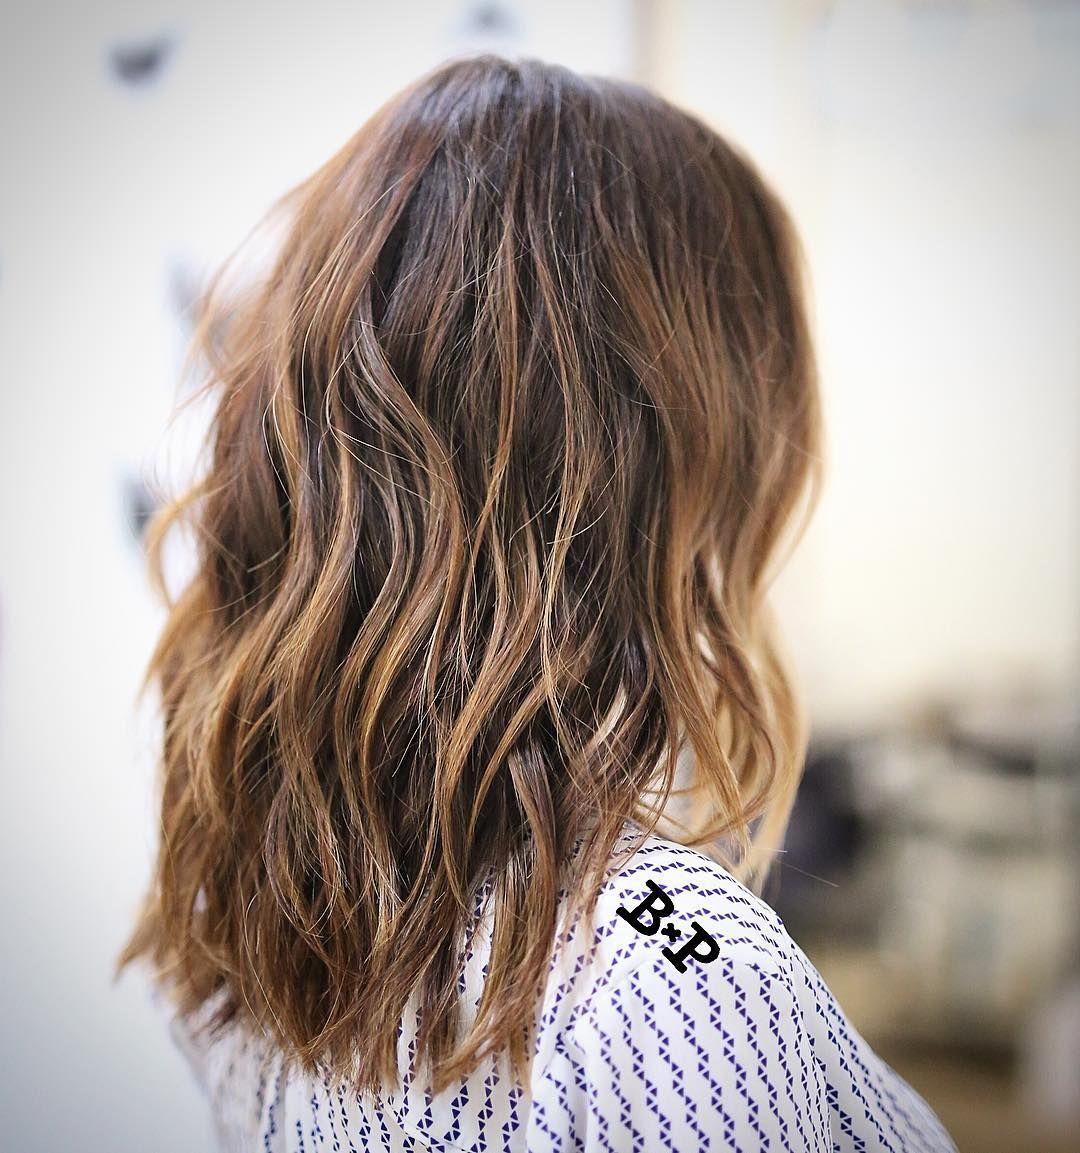 wavy chestnut-brown collarbone-length hair with caramel